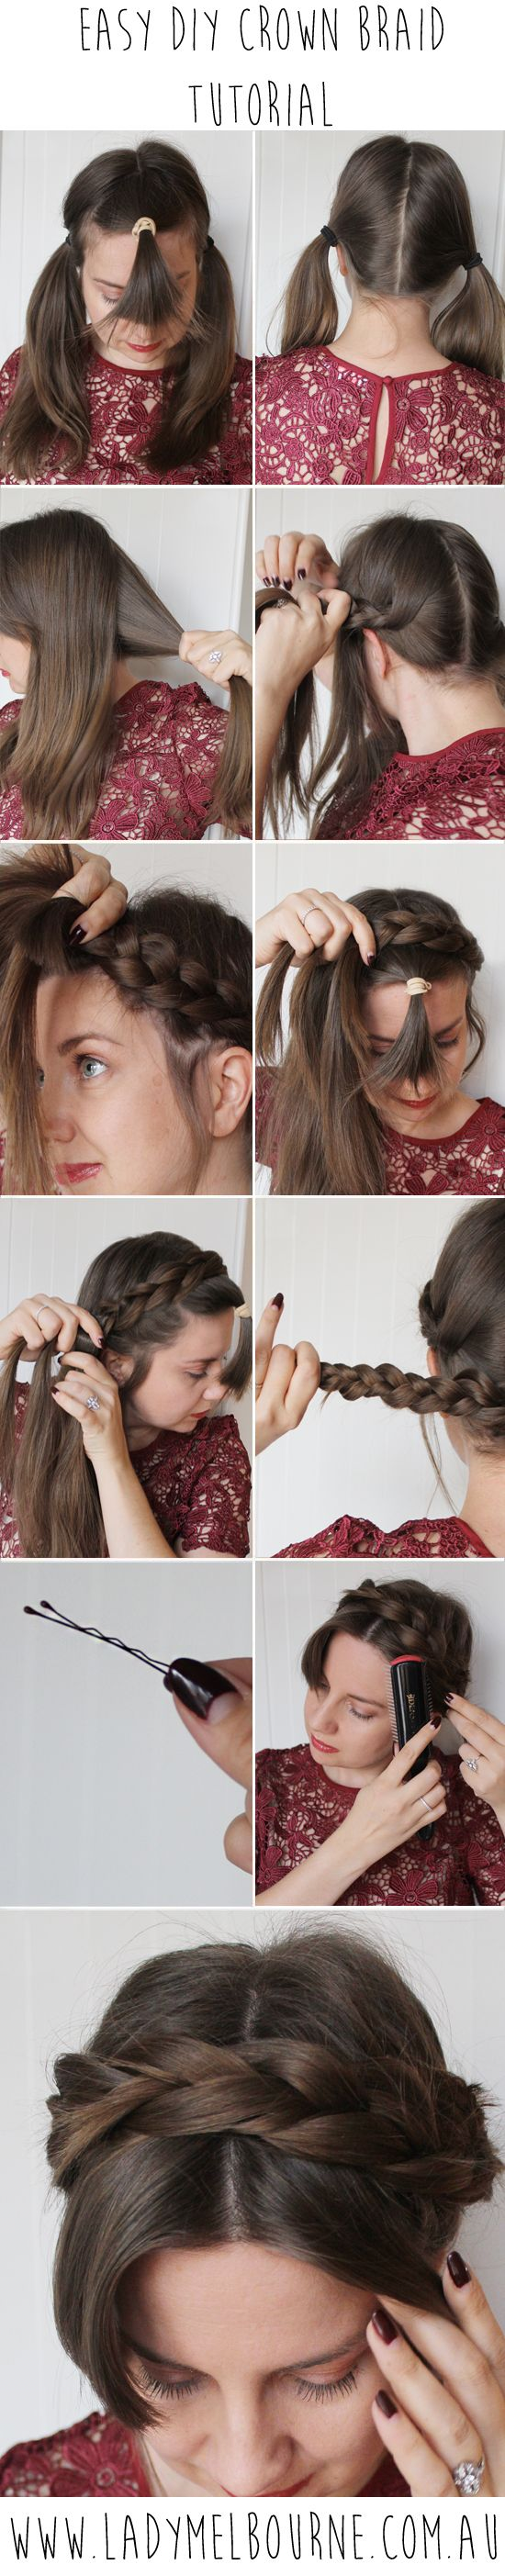 Easy diy crown braid tutorial crown braid tutorials crown braids